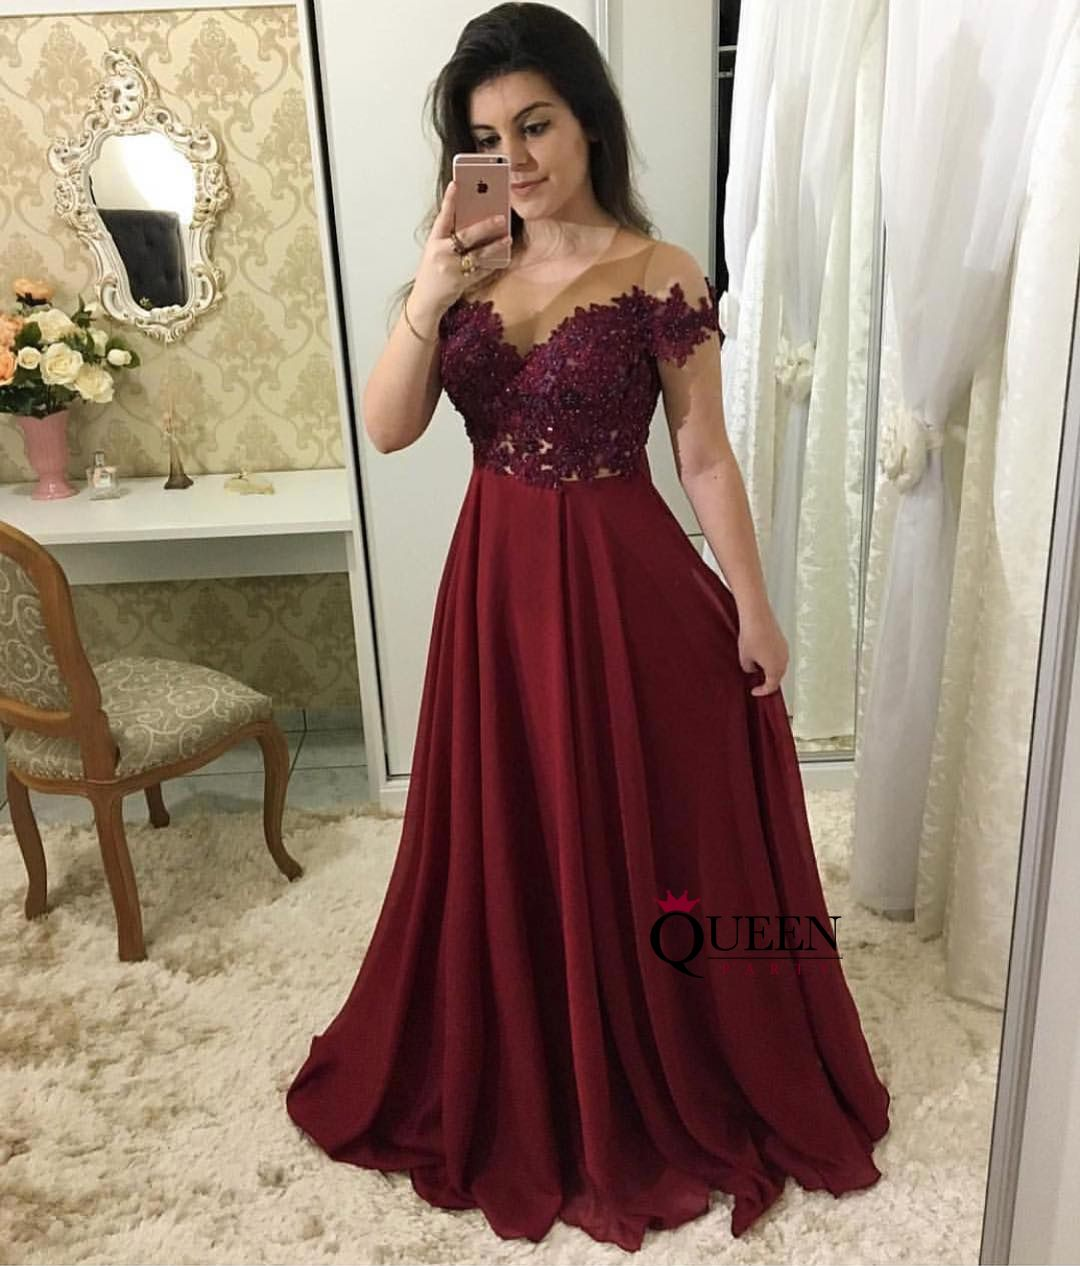 5b2fca15551 Elegant Wine Red Lace Illusion Off-the-Shoulder Chiffon Long Prom Gown With  Zipper Back